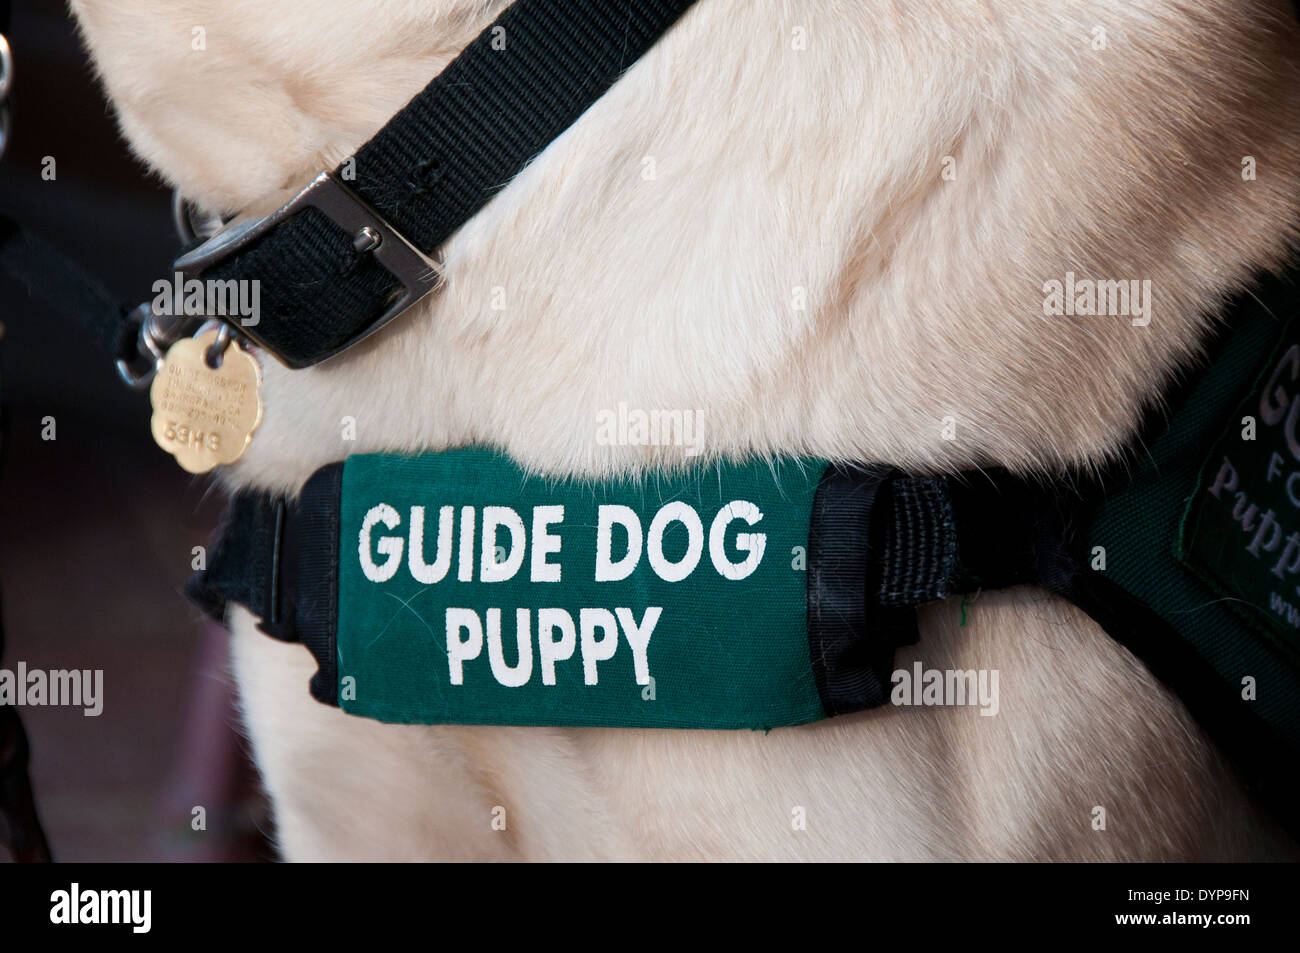 Guide dog puppy harness - Stock Image